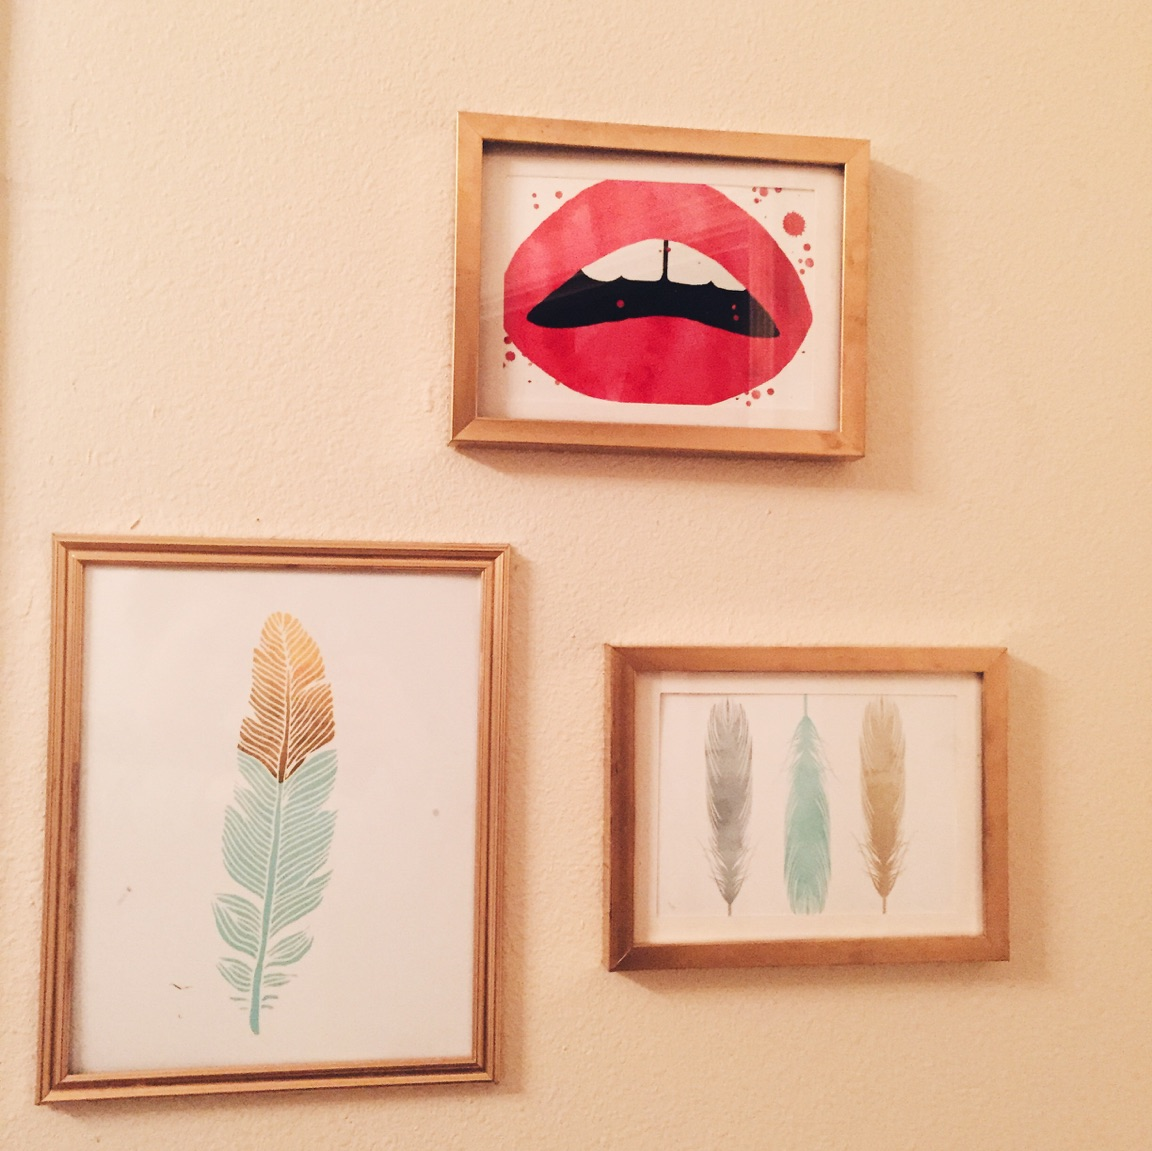 { My recent stab at spray painting everything gold. My newly mini gallery wall is coming to life! }